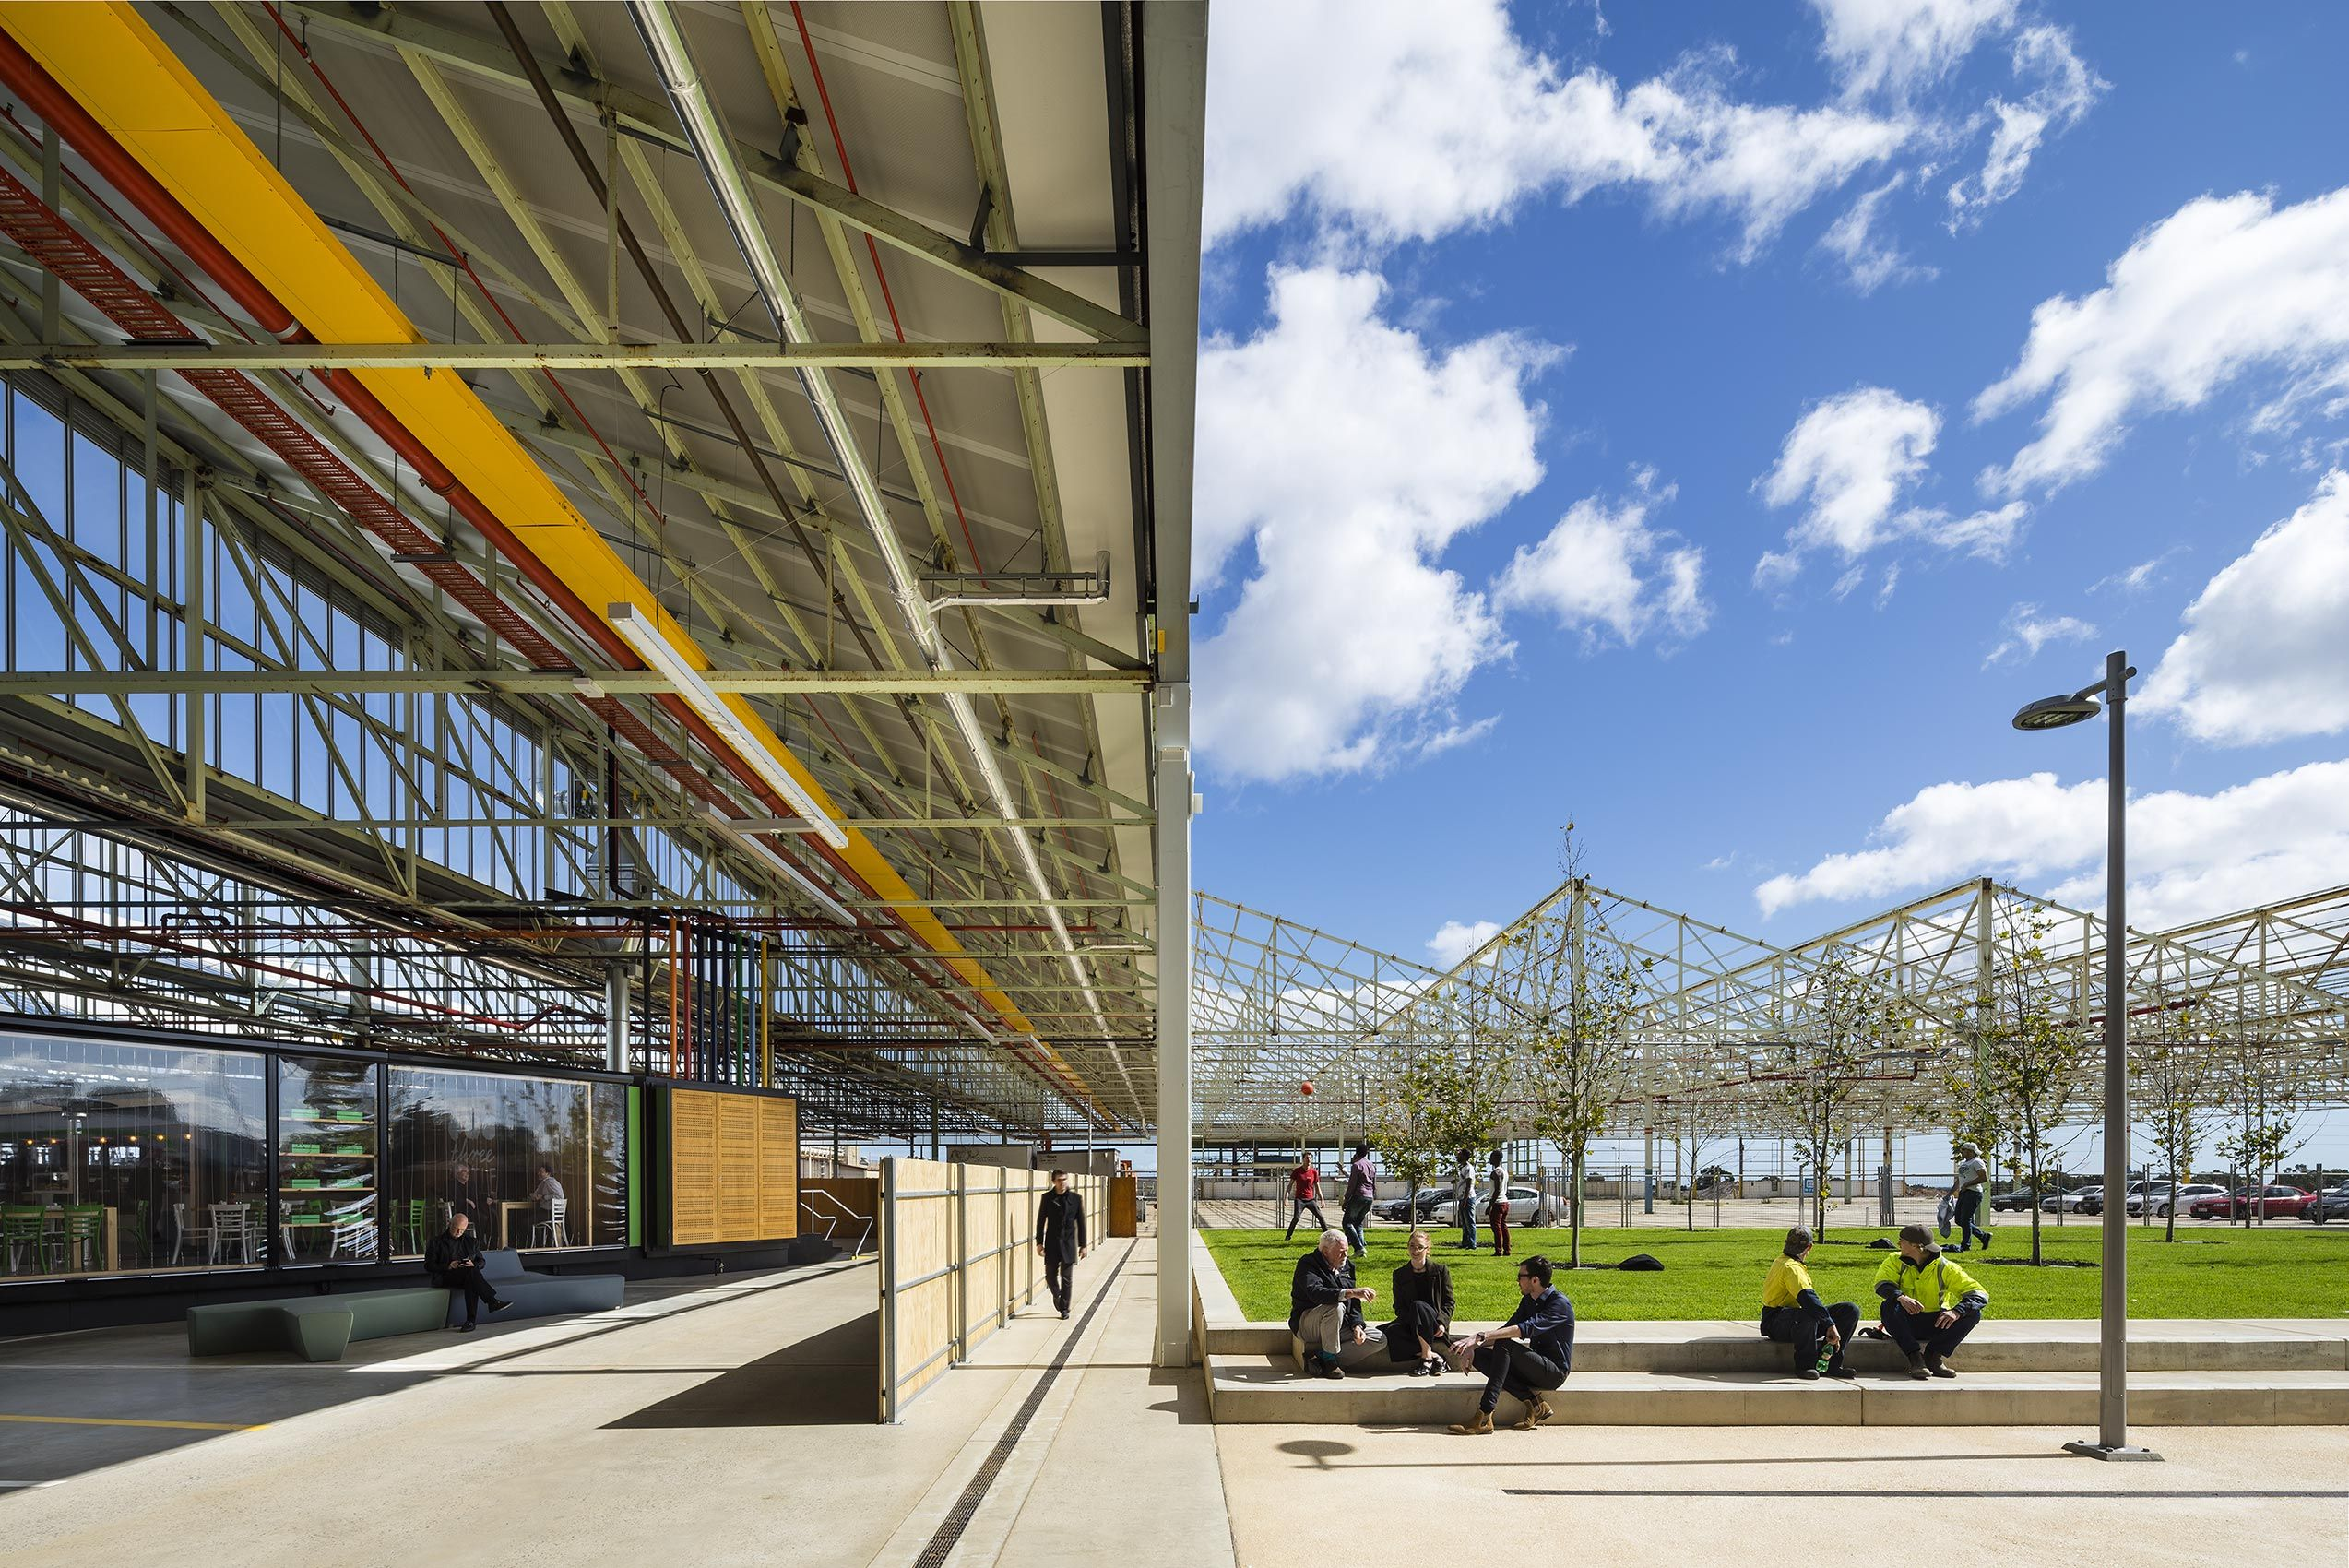 SNoonan_WB_Tonsley.jpg